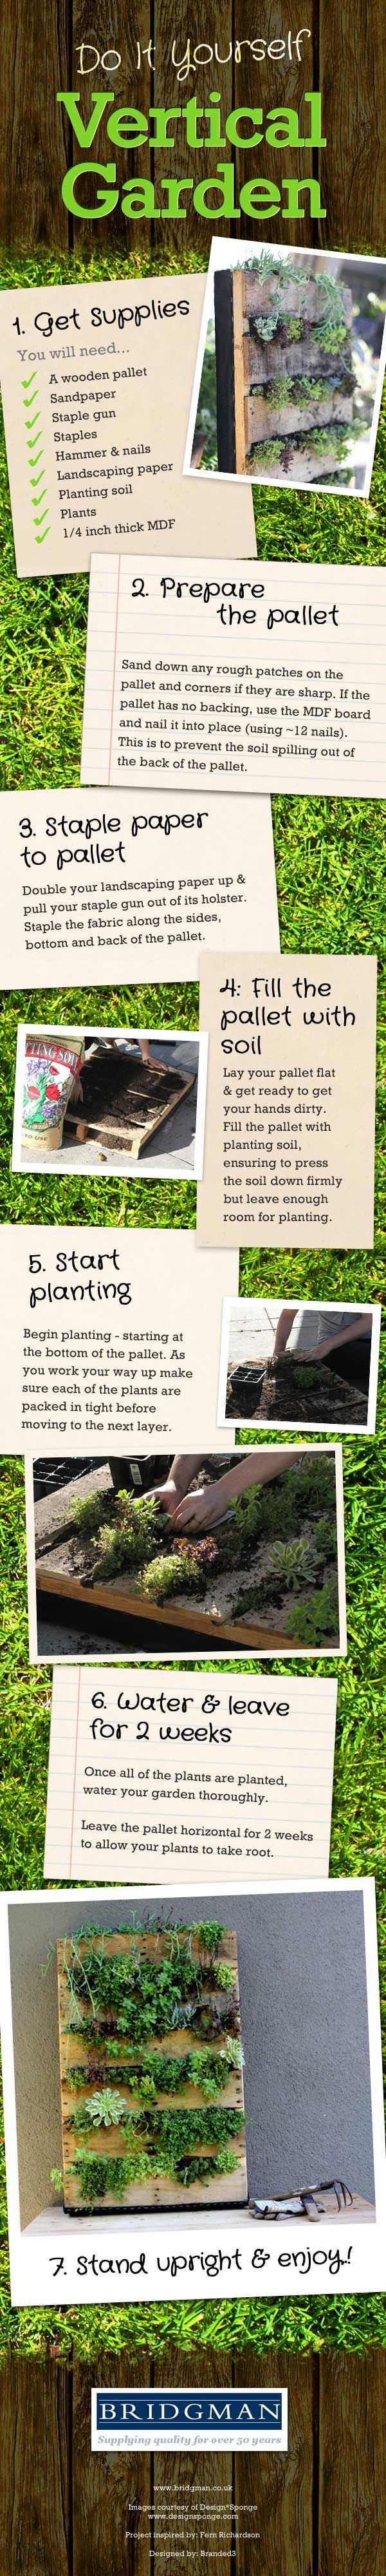 How much to water tomatoes in containers - Diy Gardening How To Create A Vertical Wall Garden